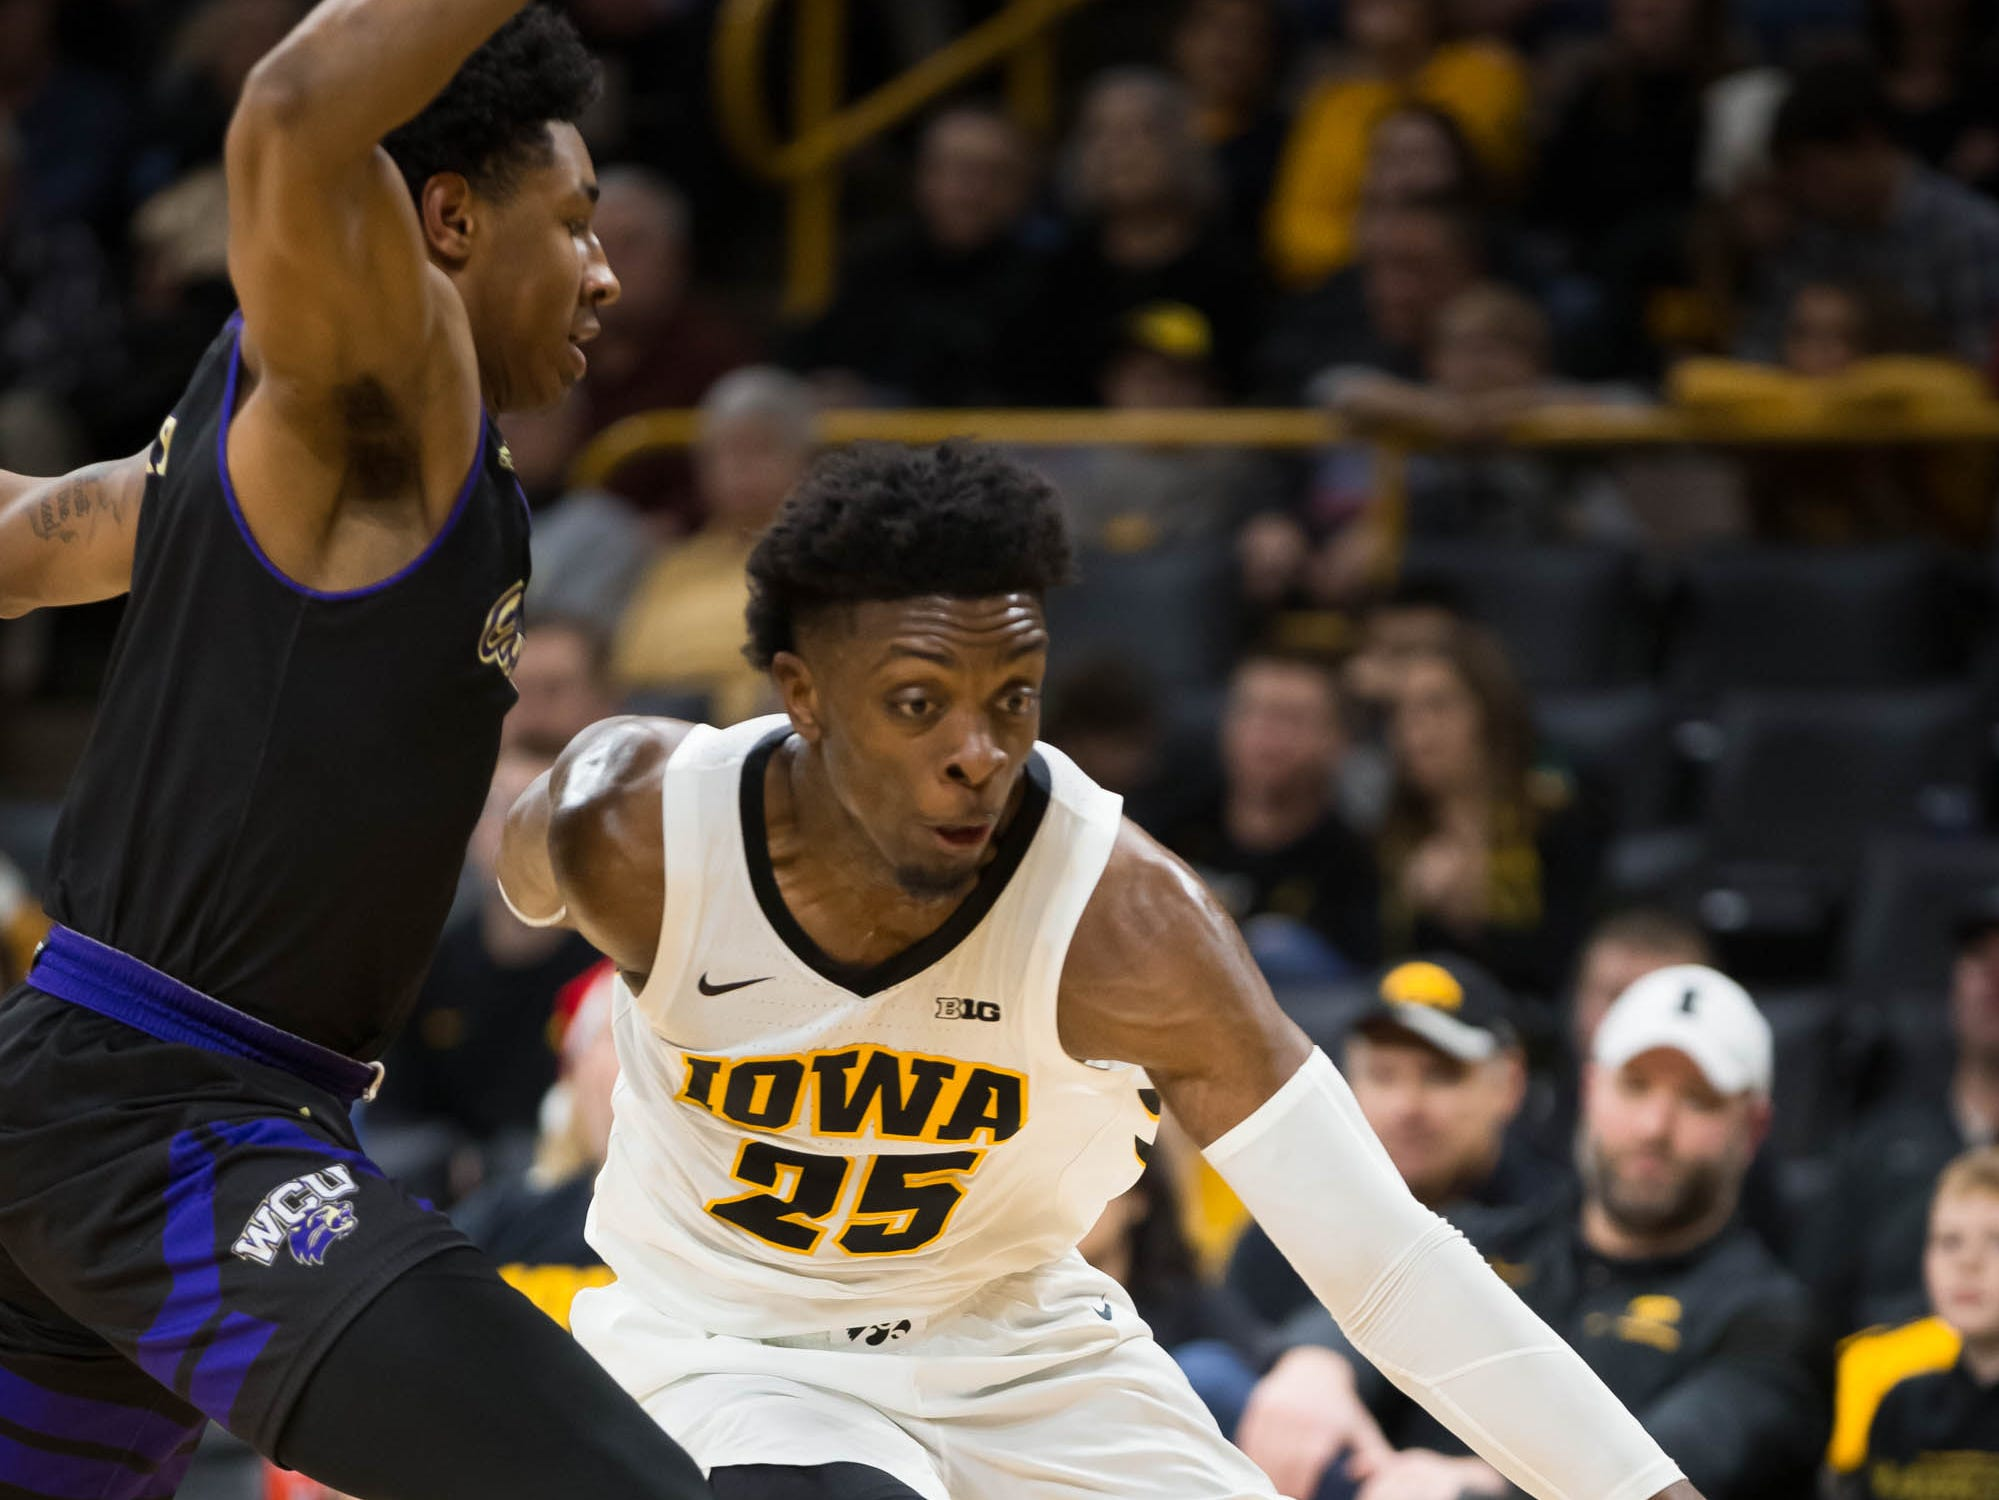 Iowa junior forward Tyler Cook (25) drives against Western Carolina freshman forward D.J. Myers (5) in the first half at Carver Hawkeye Arena in Iowa City on Tuesday, Dec. 18, 2018.